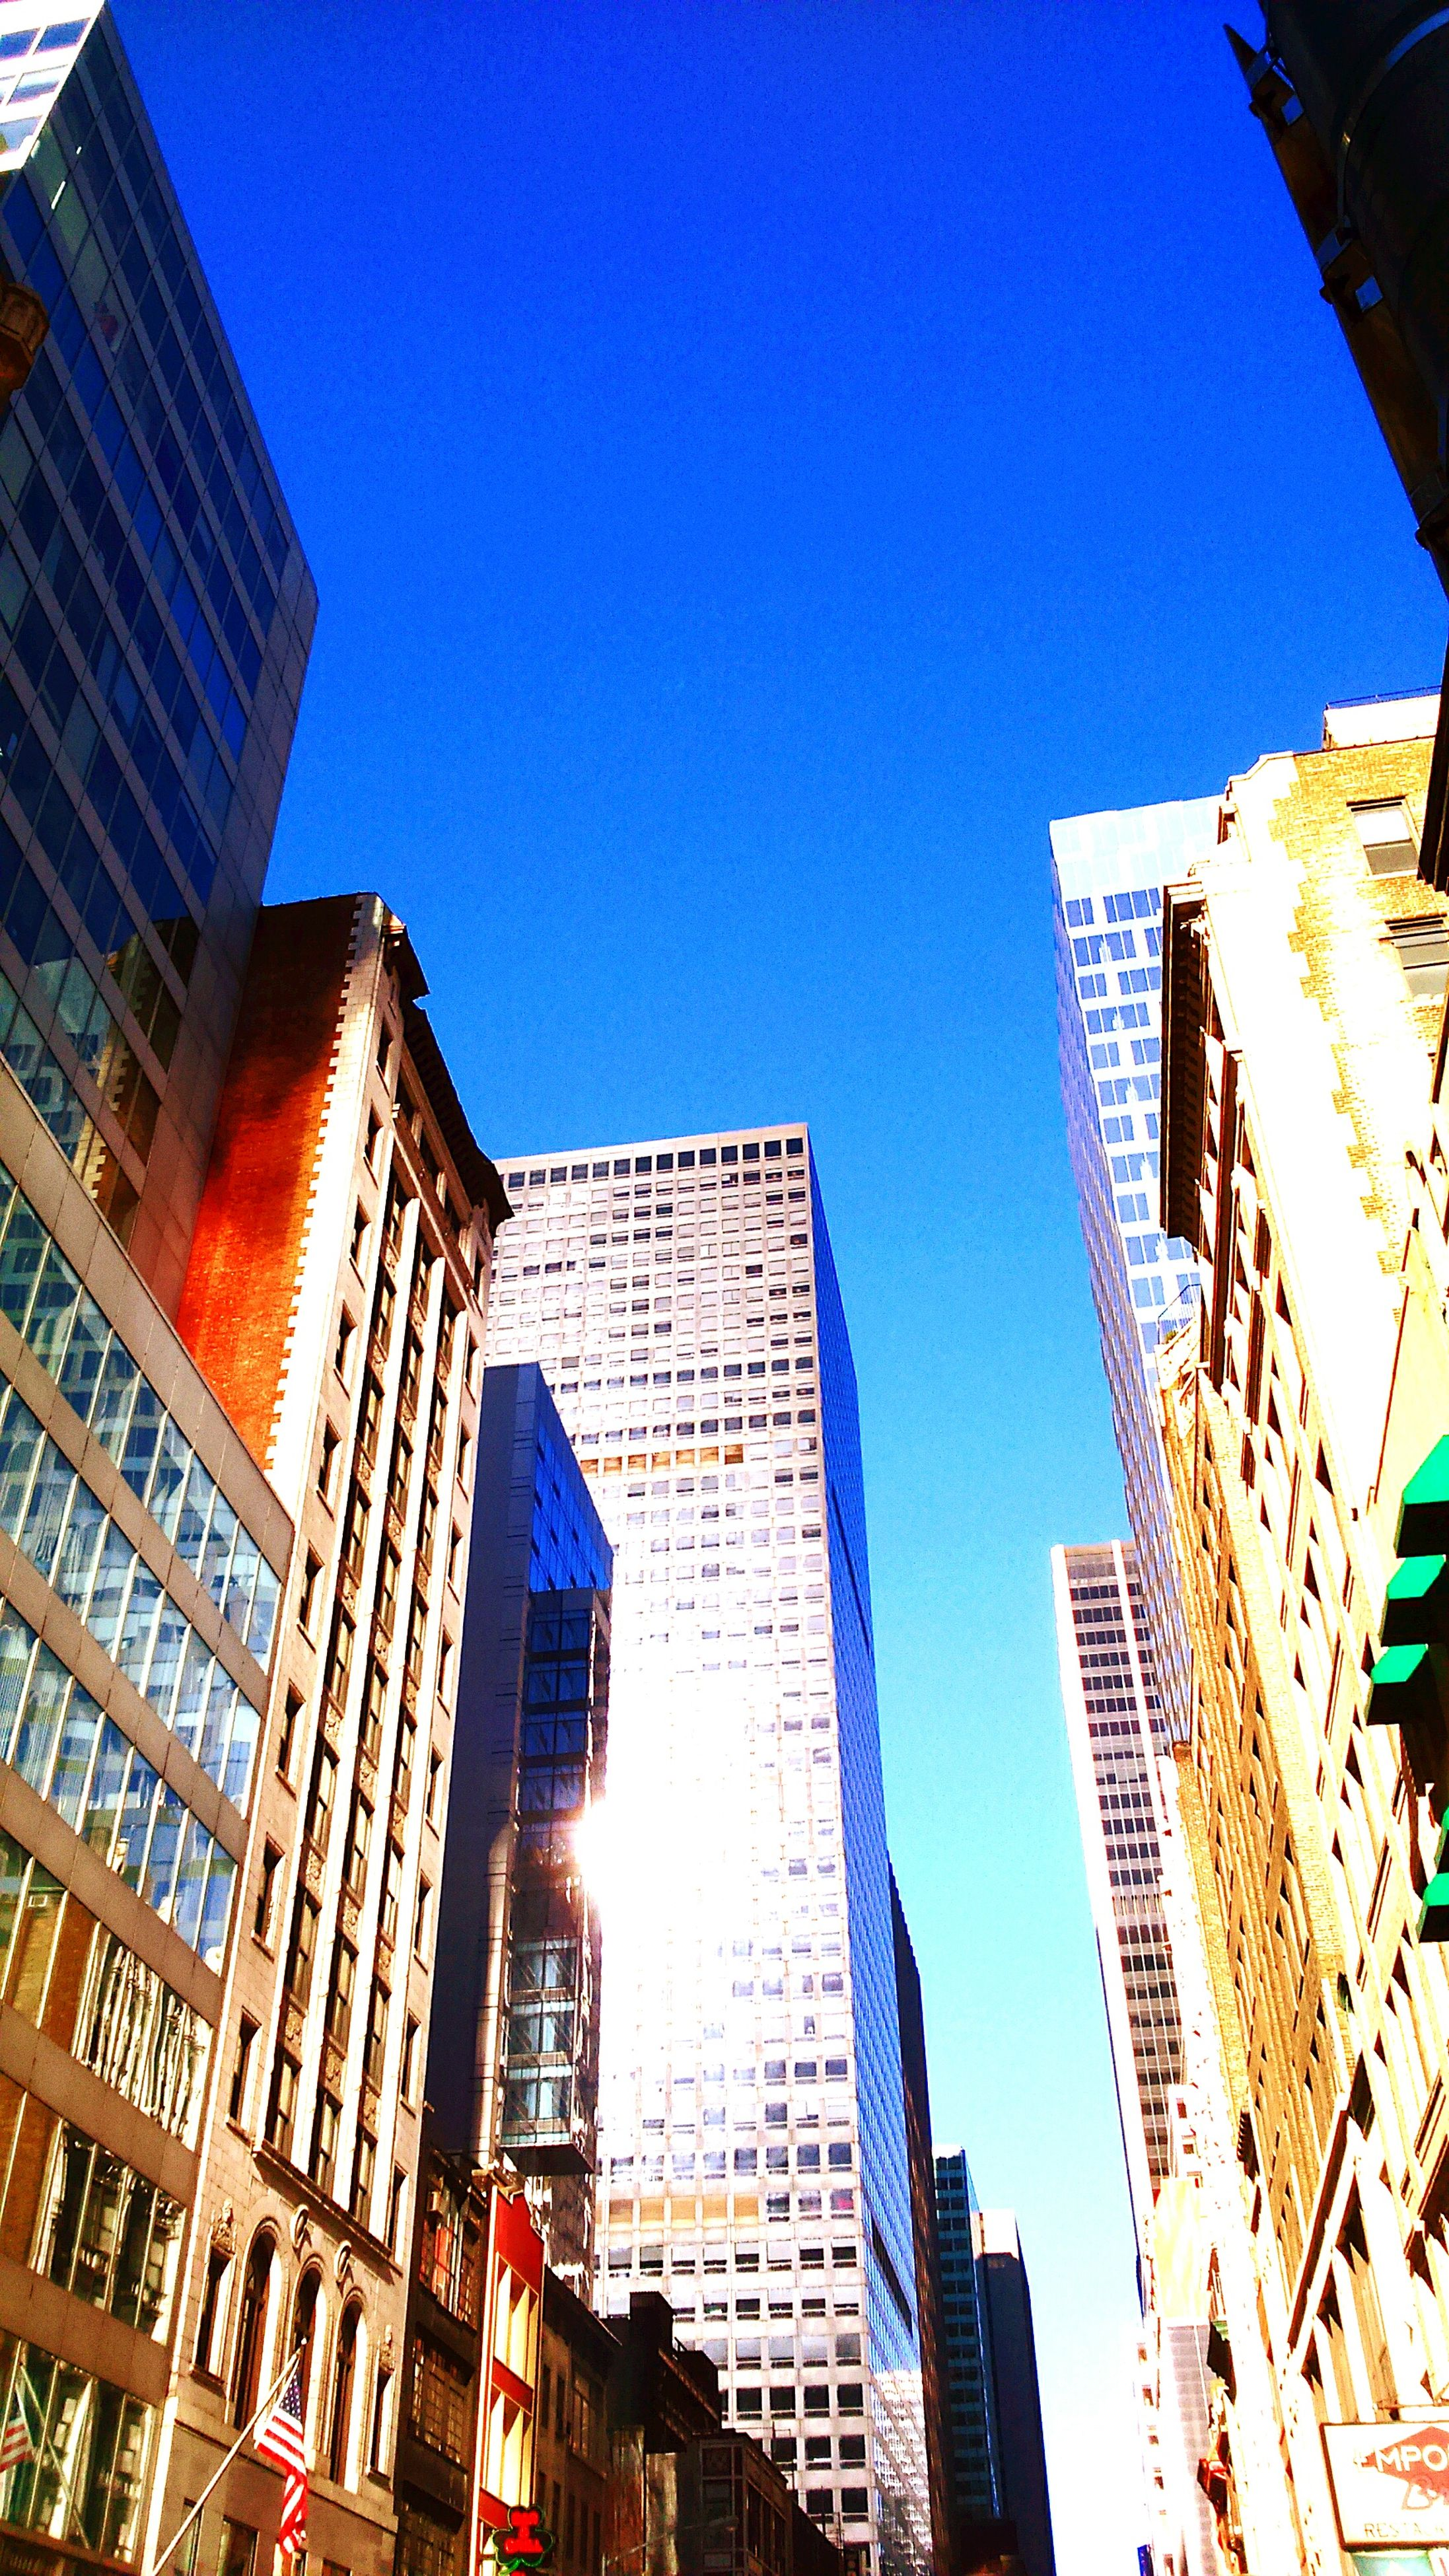 building exterior, architecture, built structure, low angle view, clear sky, city, blue, skyscraper, modern, office building, building, tall - high, tower, residential building, city life, day, outdoors, residential structure, no people, tall